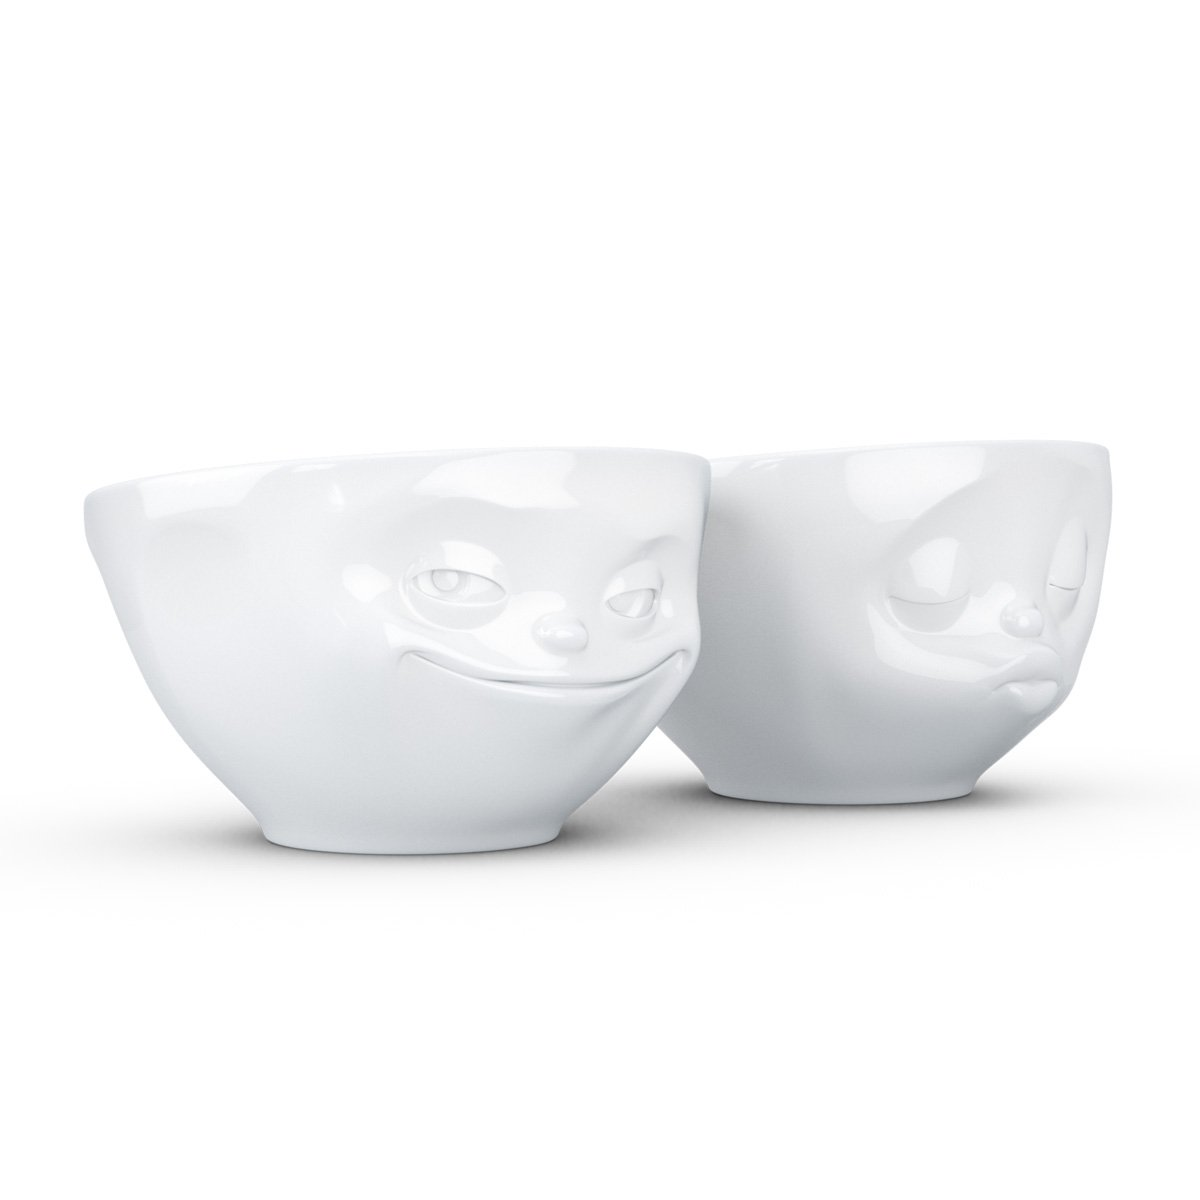 Fiftyeight Small Bowls Set Of 2 Kissing And Grinning KitchenCenter T012201